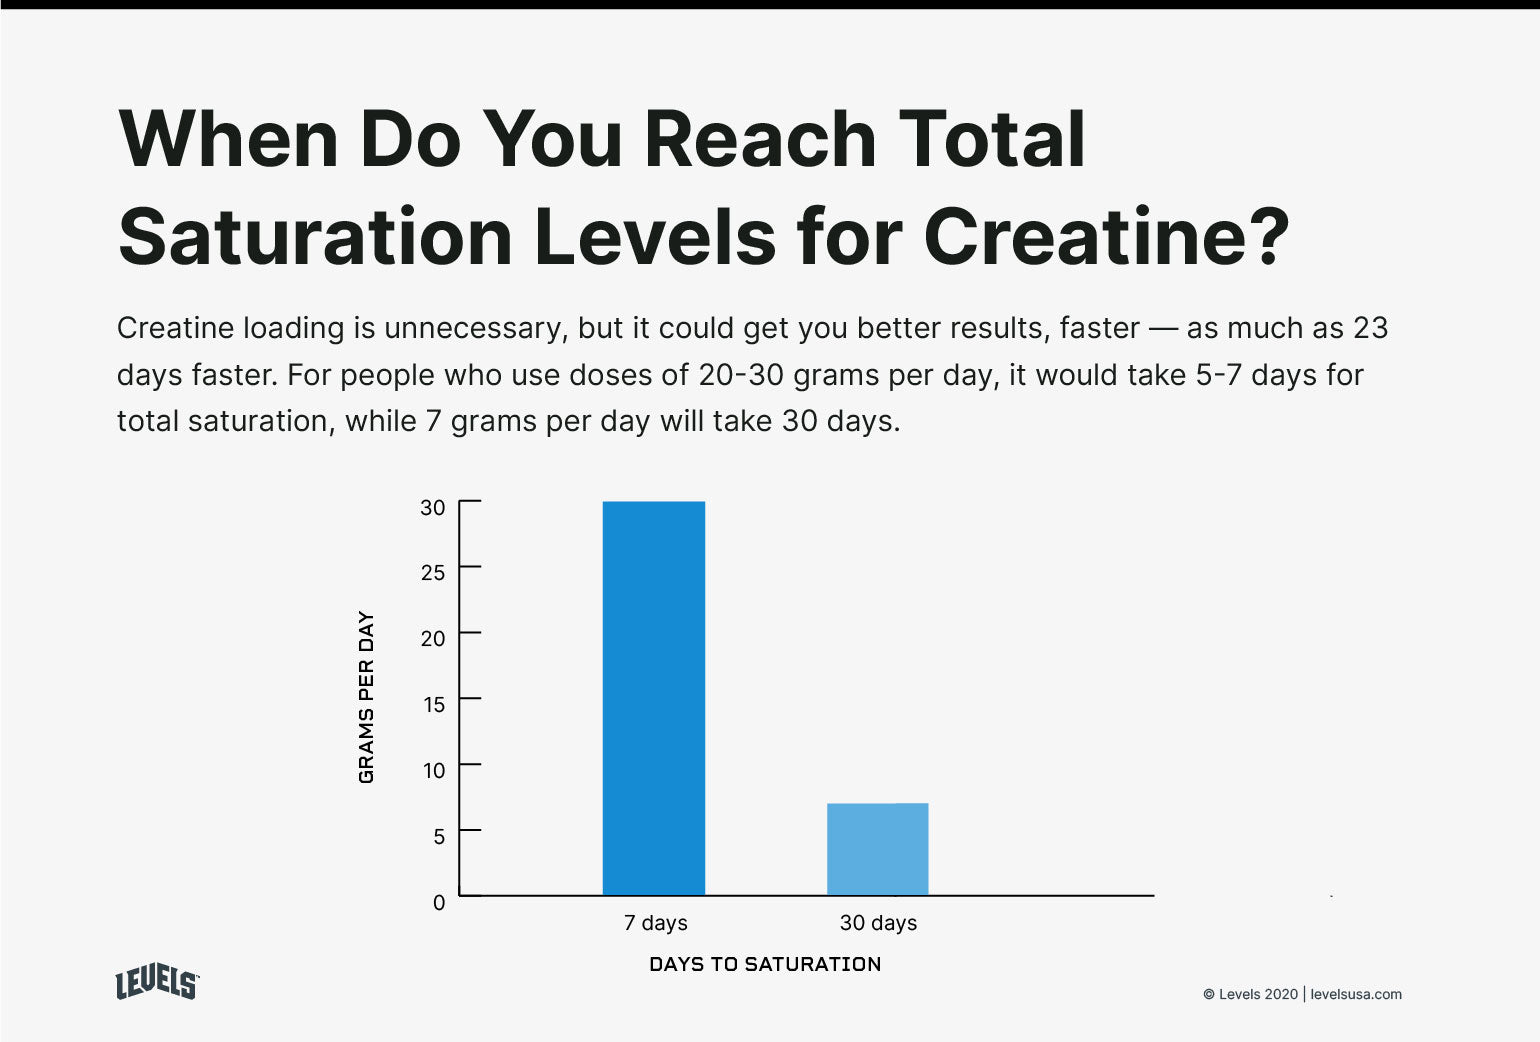 When Do You Reach Total Saturation Levels for Creatine - Infographic